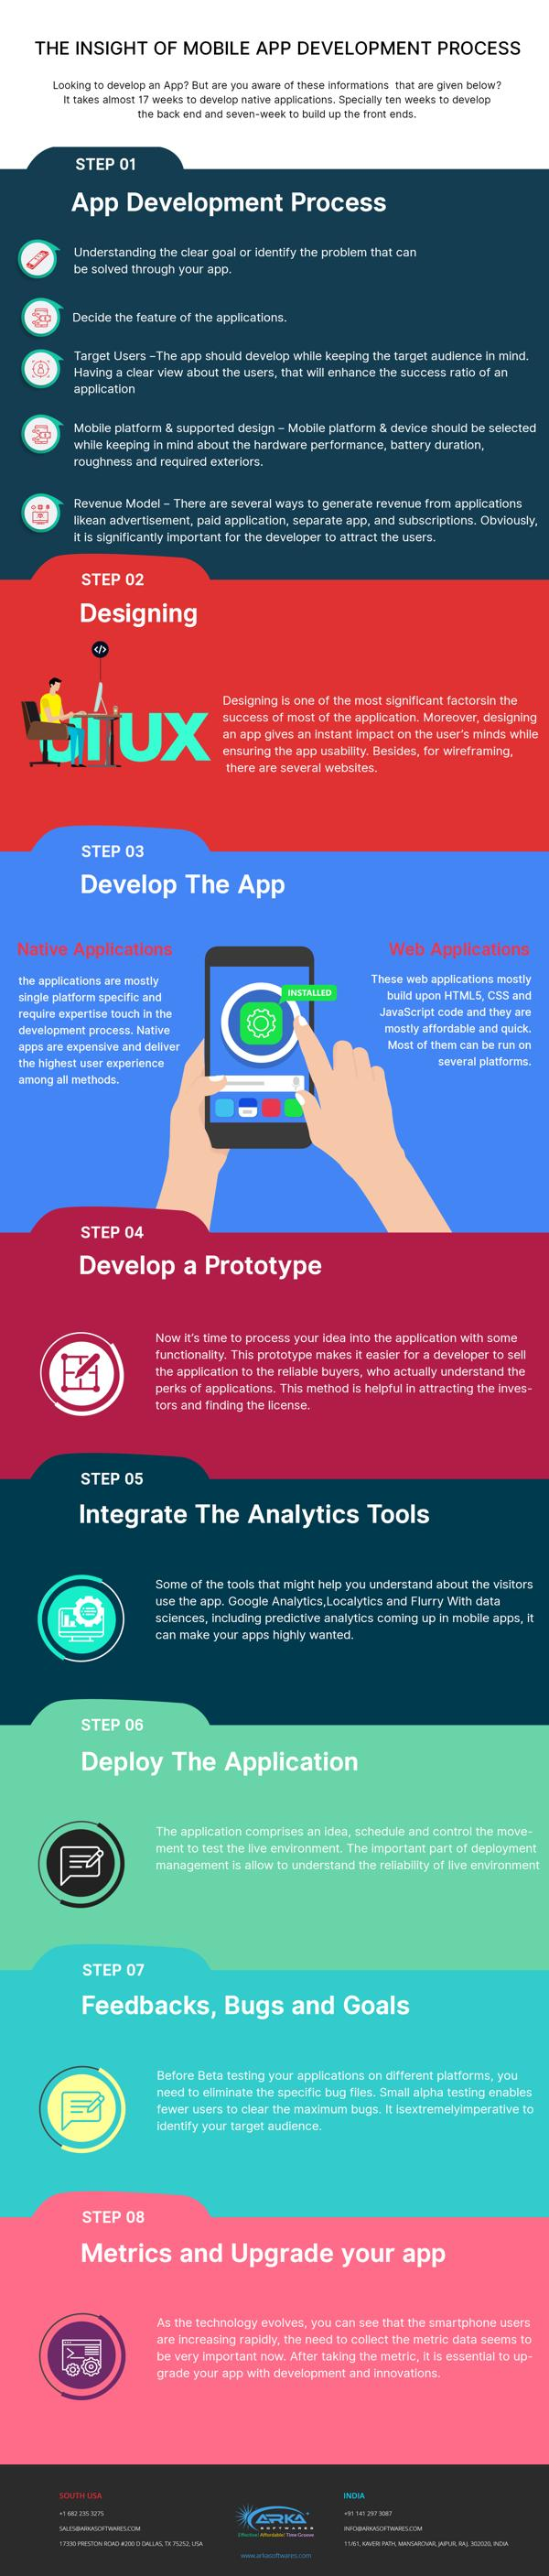 The insight of Mobile App Development Process 1